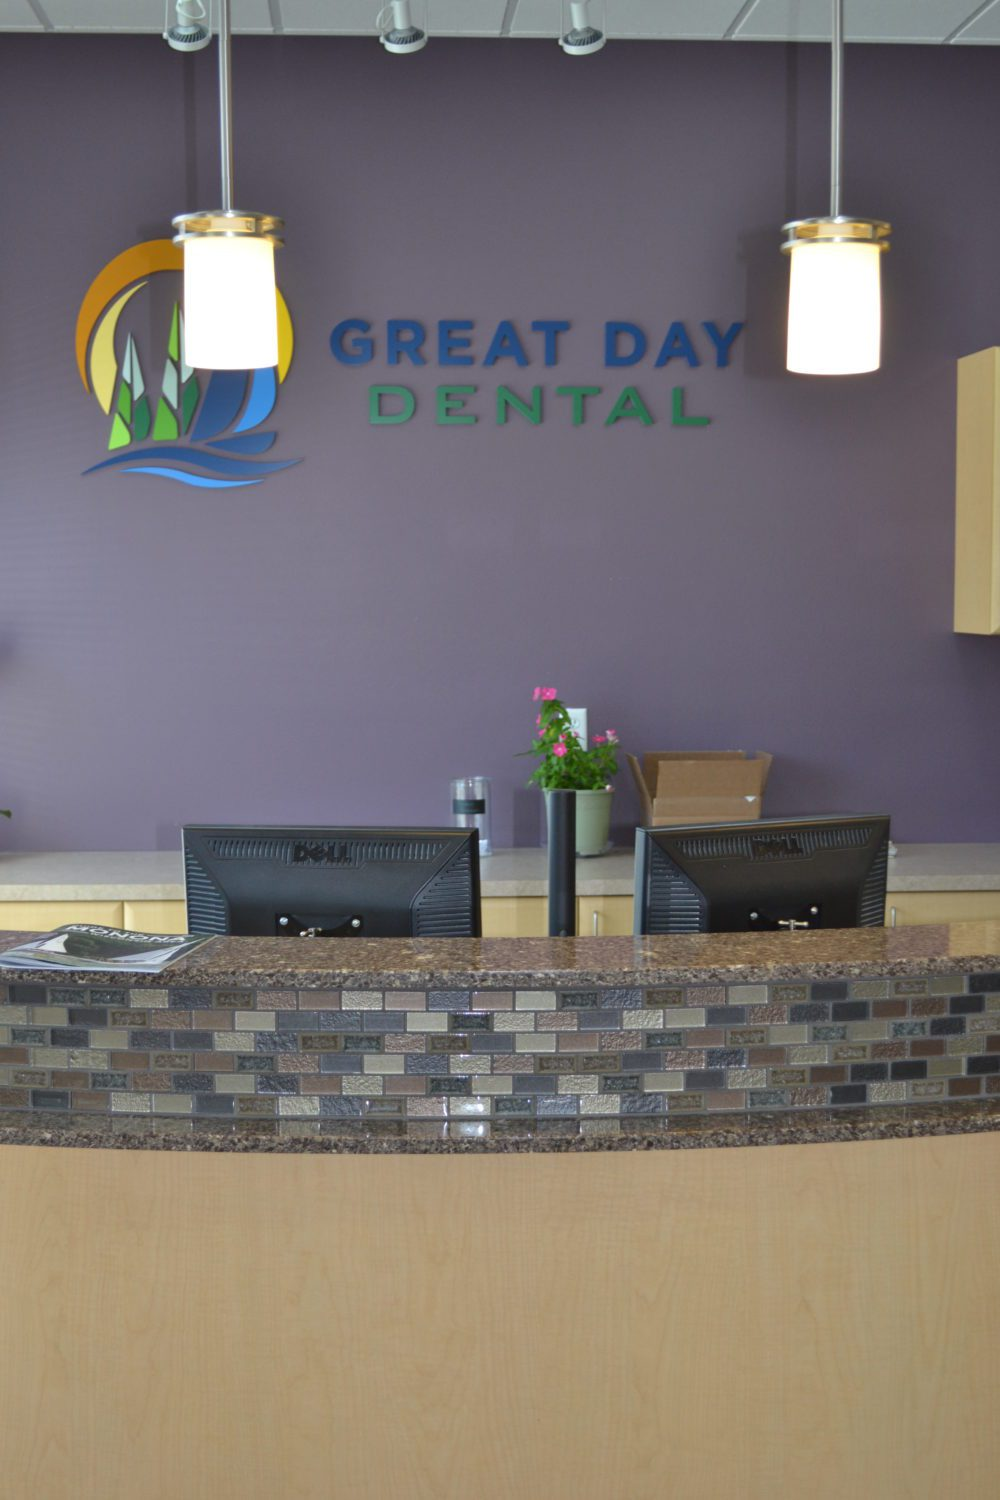 Madison WI- 2985 Square Foot Dental Clinic Build-Out & Great Day Dental | Keller Builds